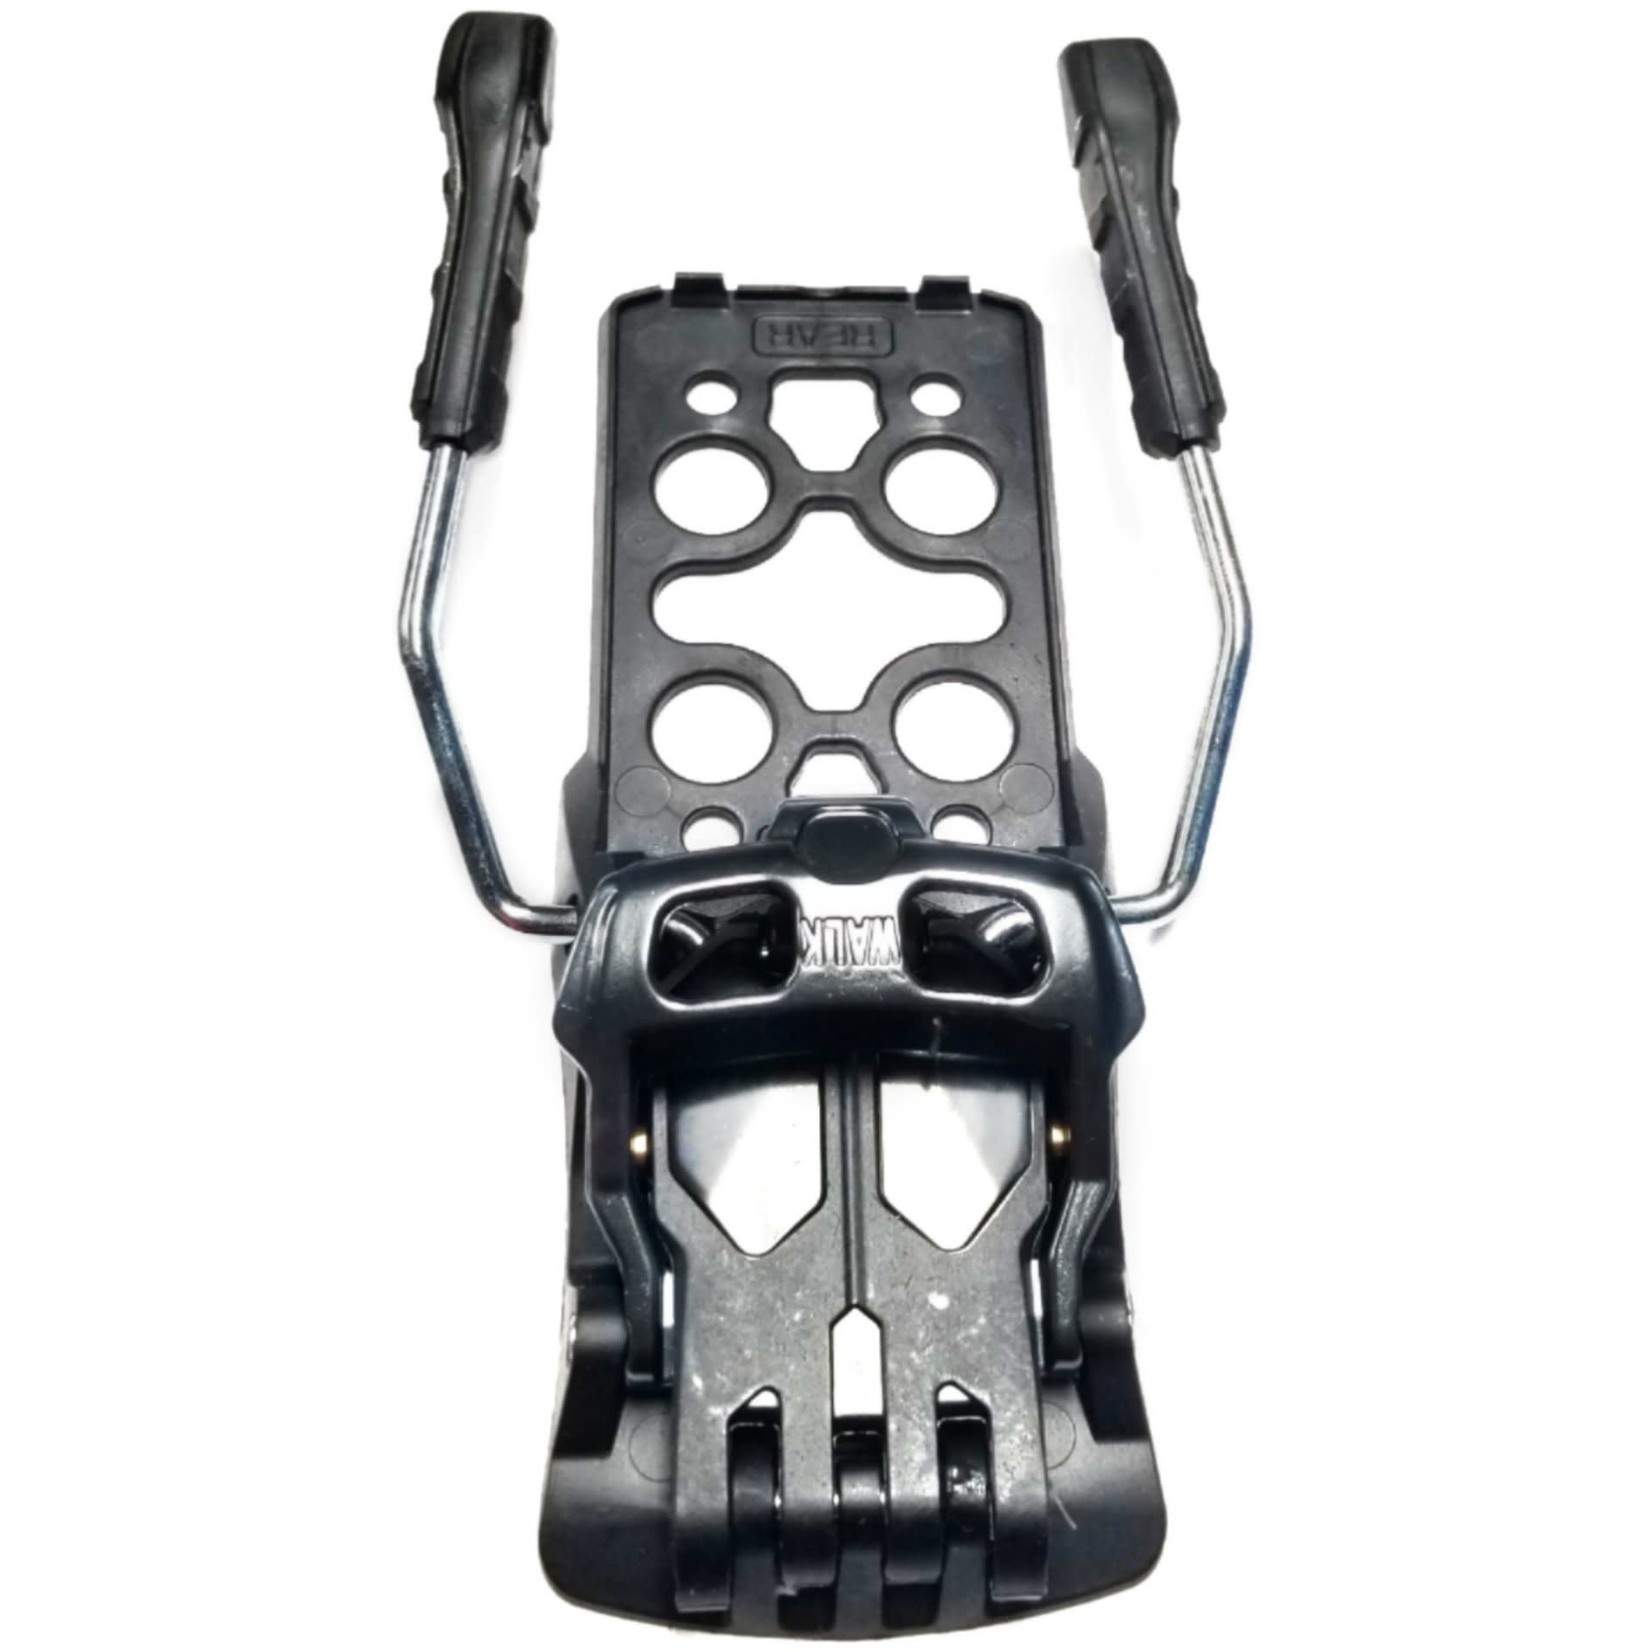 Atomic Atomic Touring brakes for Backland Pure